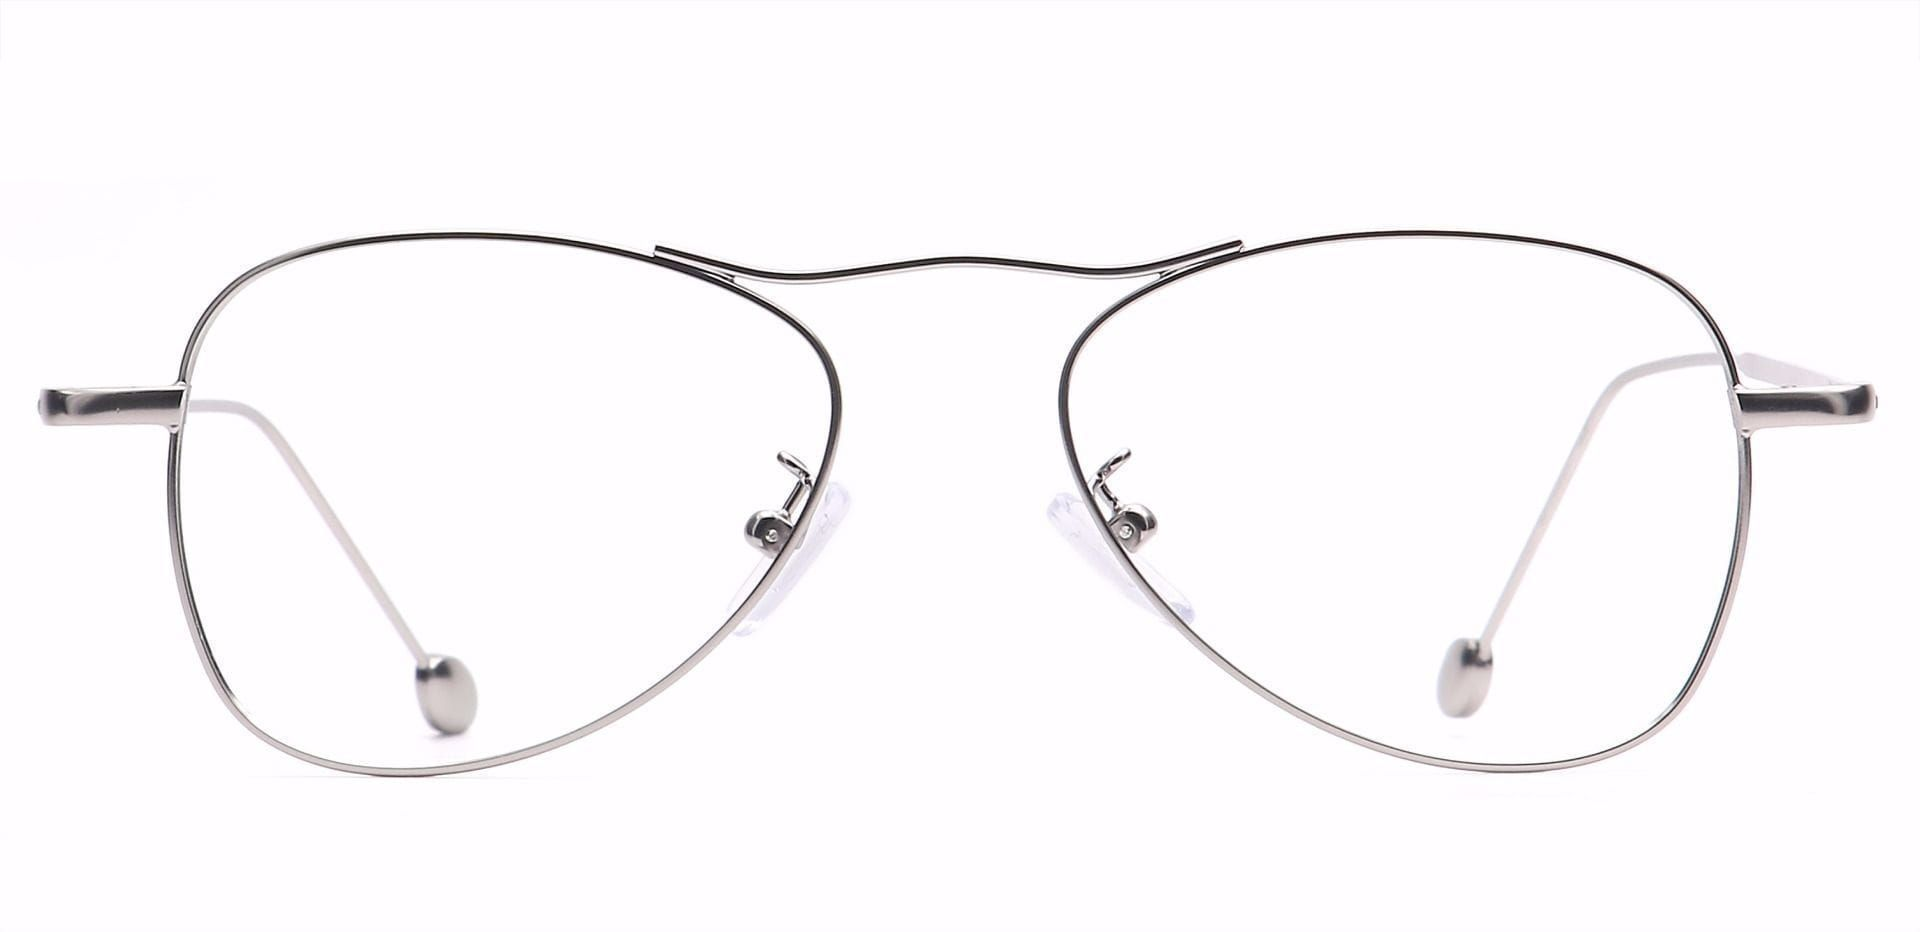 Brio Aviator Reading Glasses - Clear